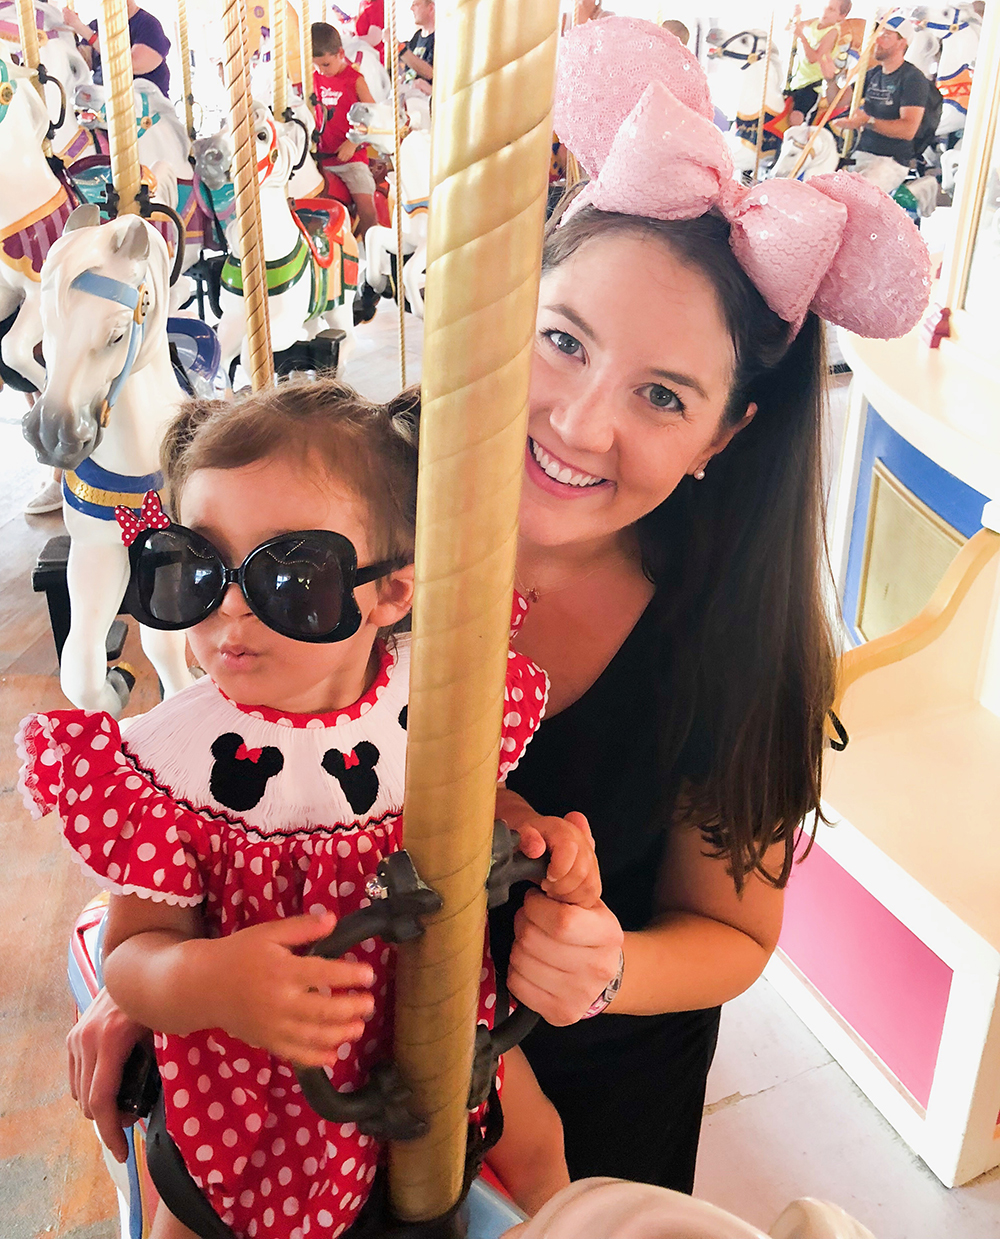 How to have a Magical Day At Disney - carousel ride